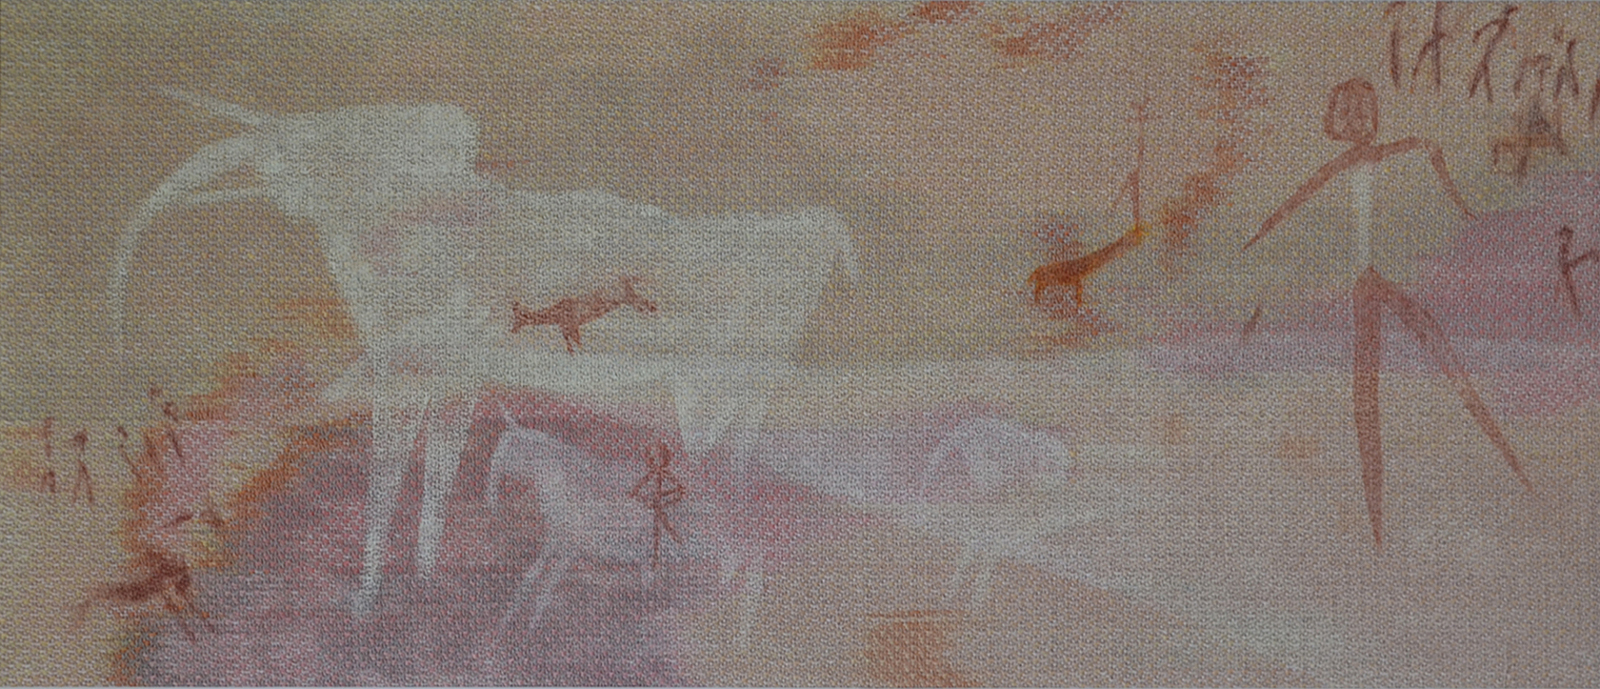 Dyed linen woven and painted, cave Painting inspired by Phillips Cave, Namibia, Africa